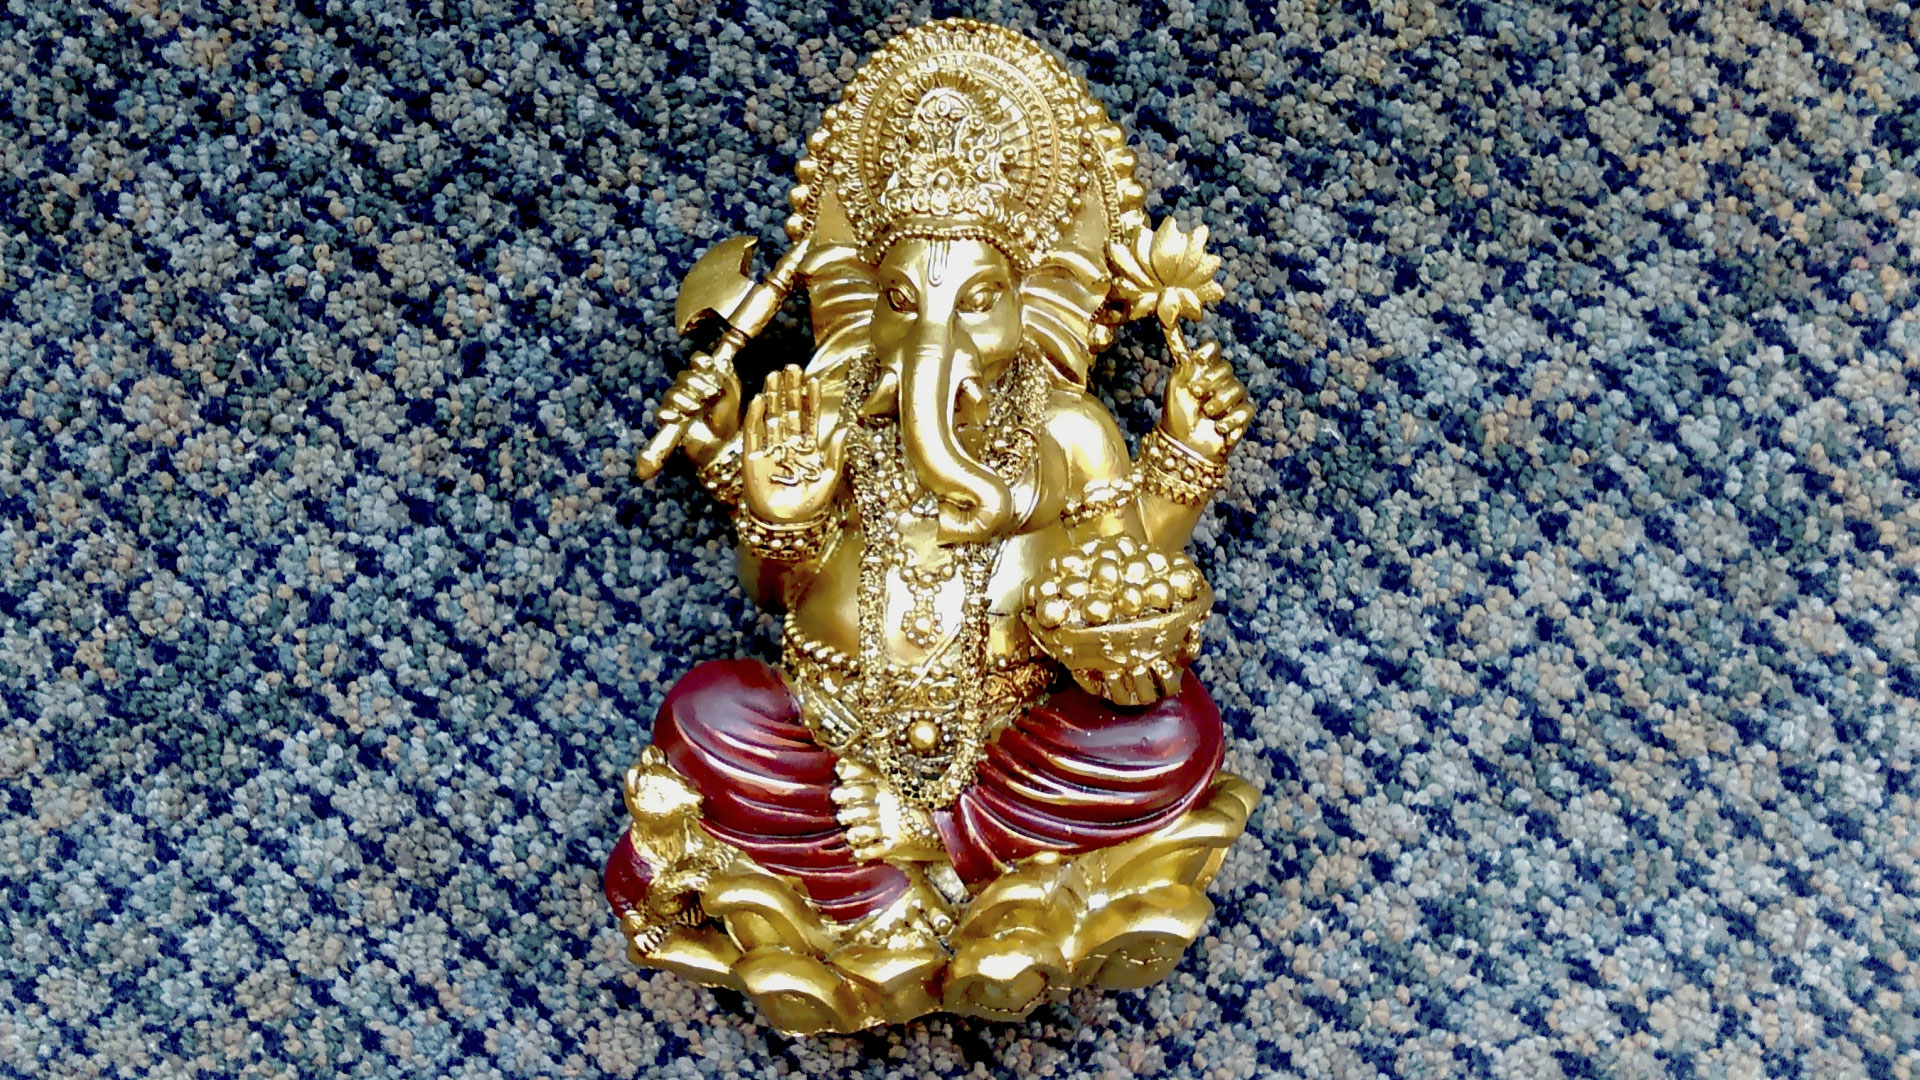 a ganesha figure from the kit